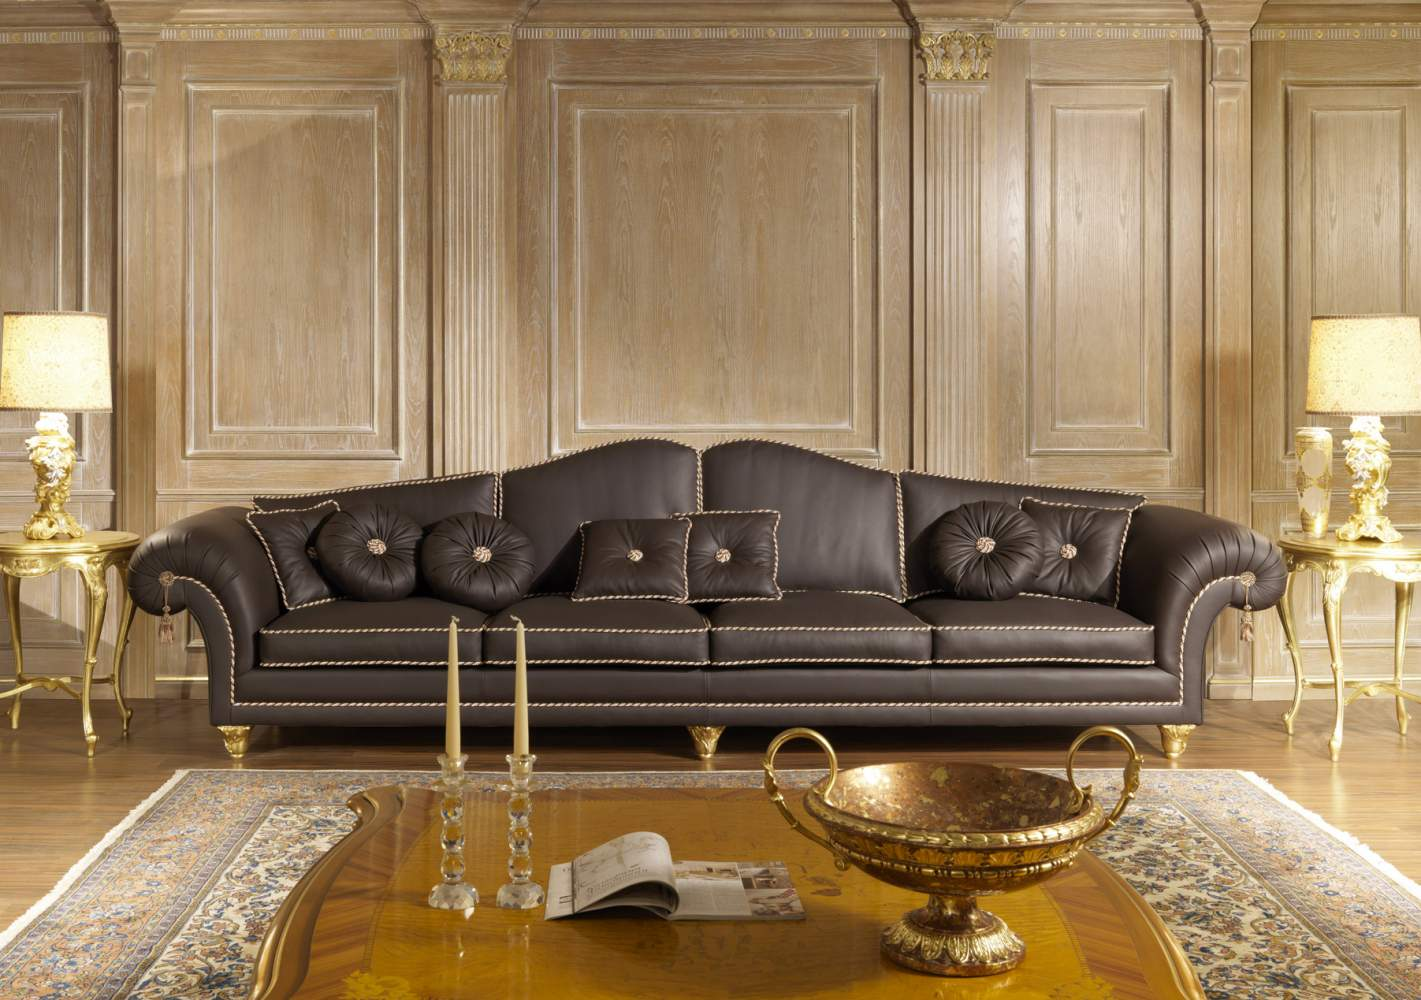 Extra large sofa in leather